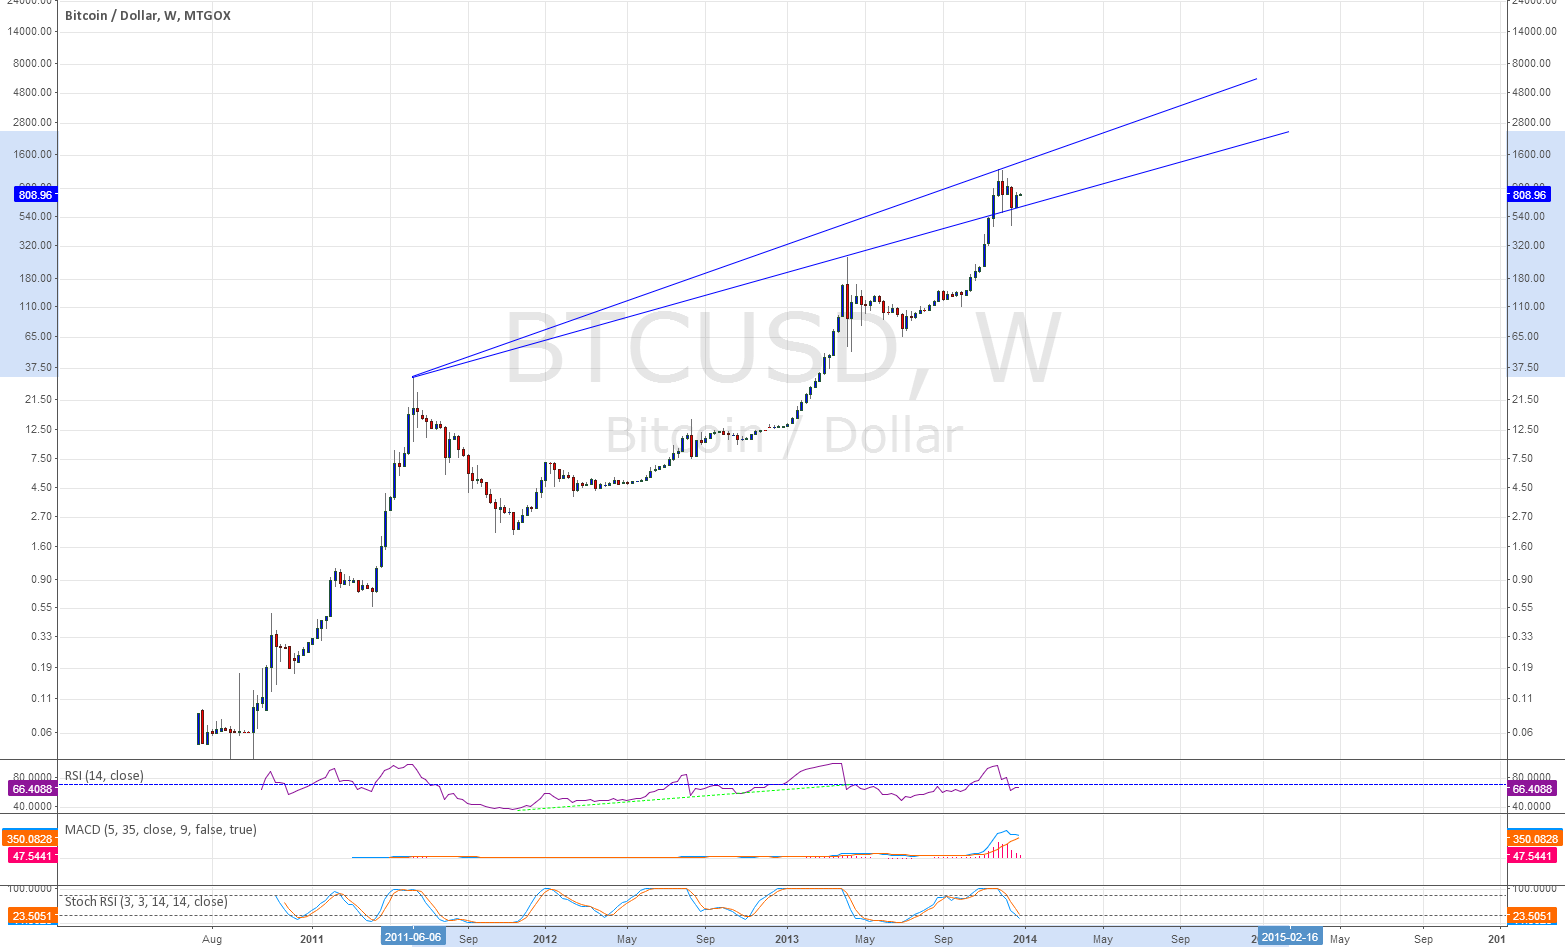 Weekly Uptrend Bouncing Up